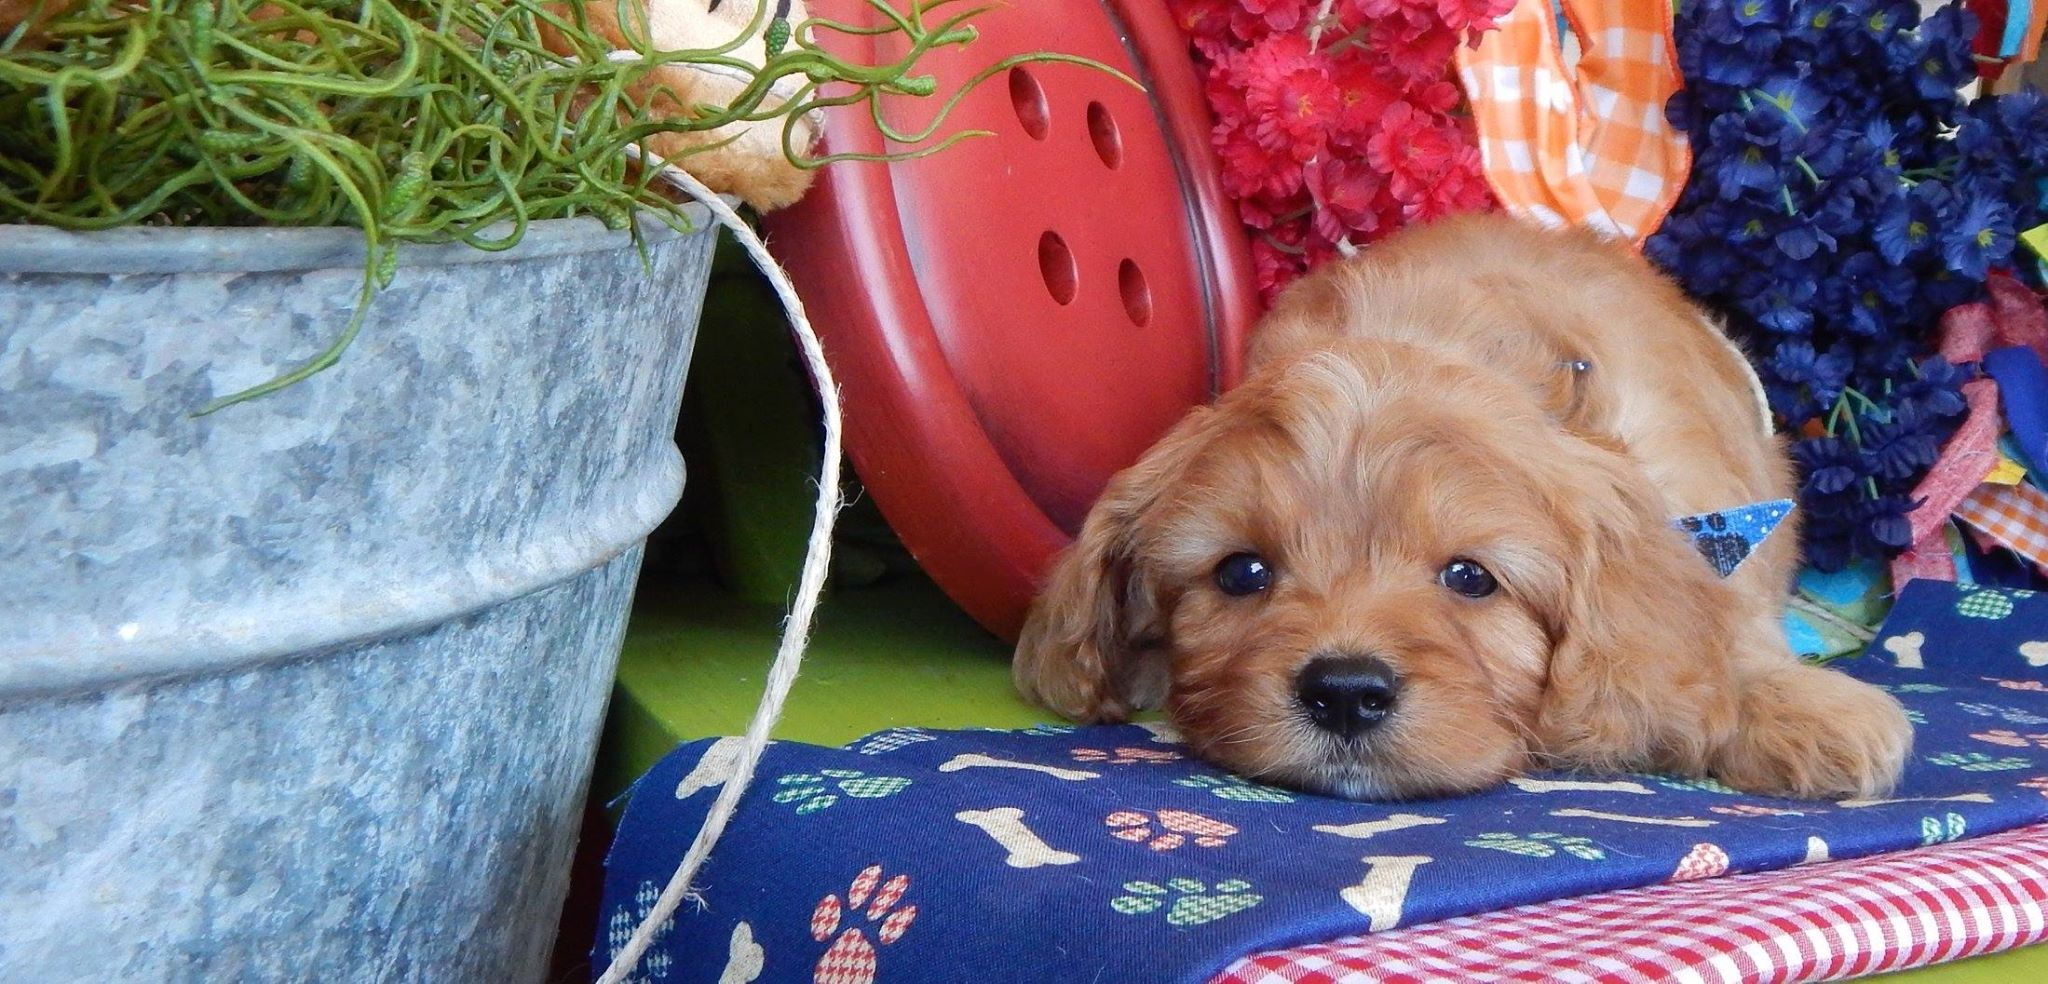 Cavapoo puppies for sale, Cavapoo, Cavapoos, Cavapoo dog